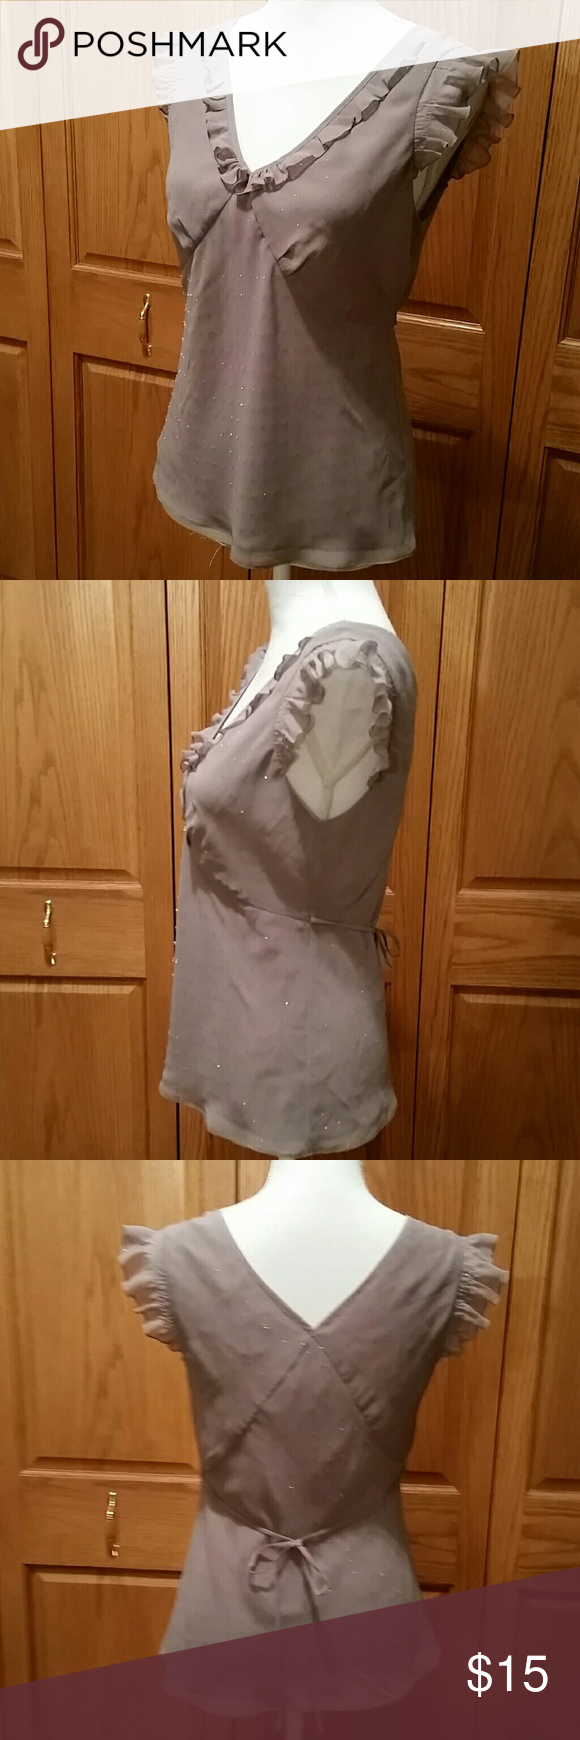 NWOT Ann Taylor LOFT Taupe Camisol Type Blouse Very pretty and feminine this blouse is two layers, one being a liner. Ruffled neckline and tie backs on the side. No zipper just a more open cut that slips overhead easily. 100% polyester with soft flecks of silver threading throughout that make this pretty top sparkle. Breastline across laying flat measures 17. Shoulder to bottom of top measures 23 inches. Never worn. LOFT Tops Blouses